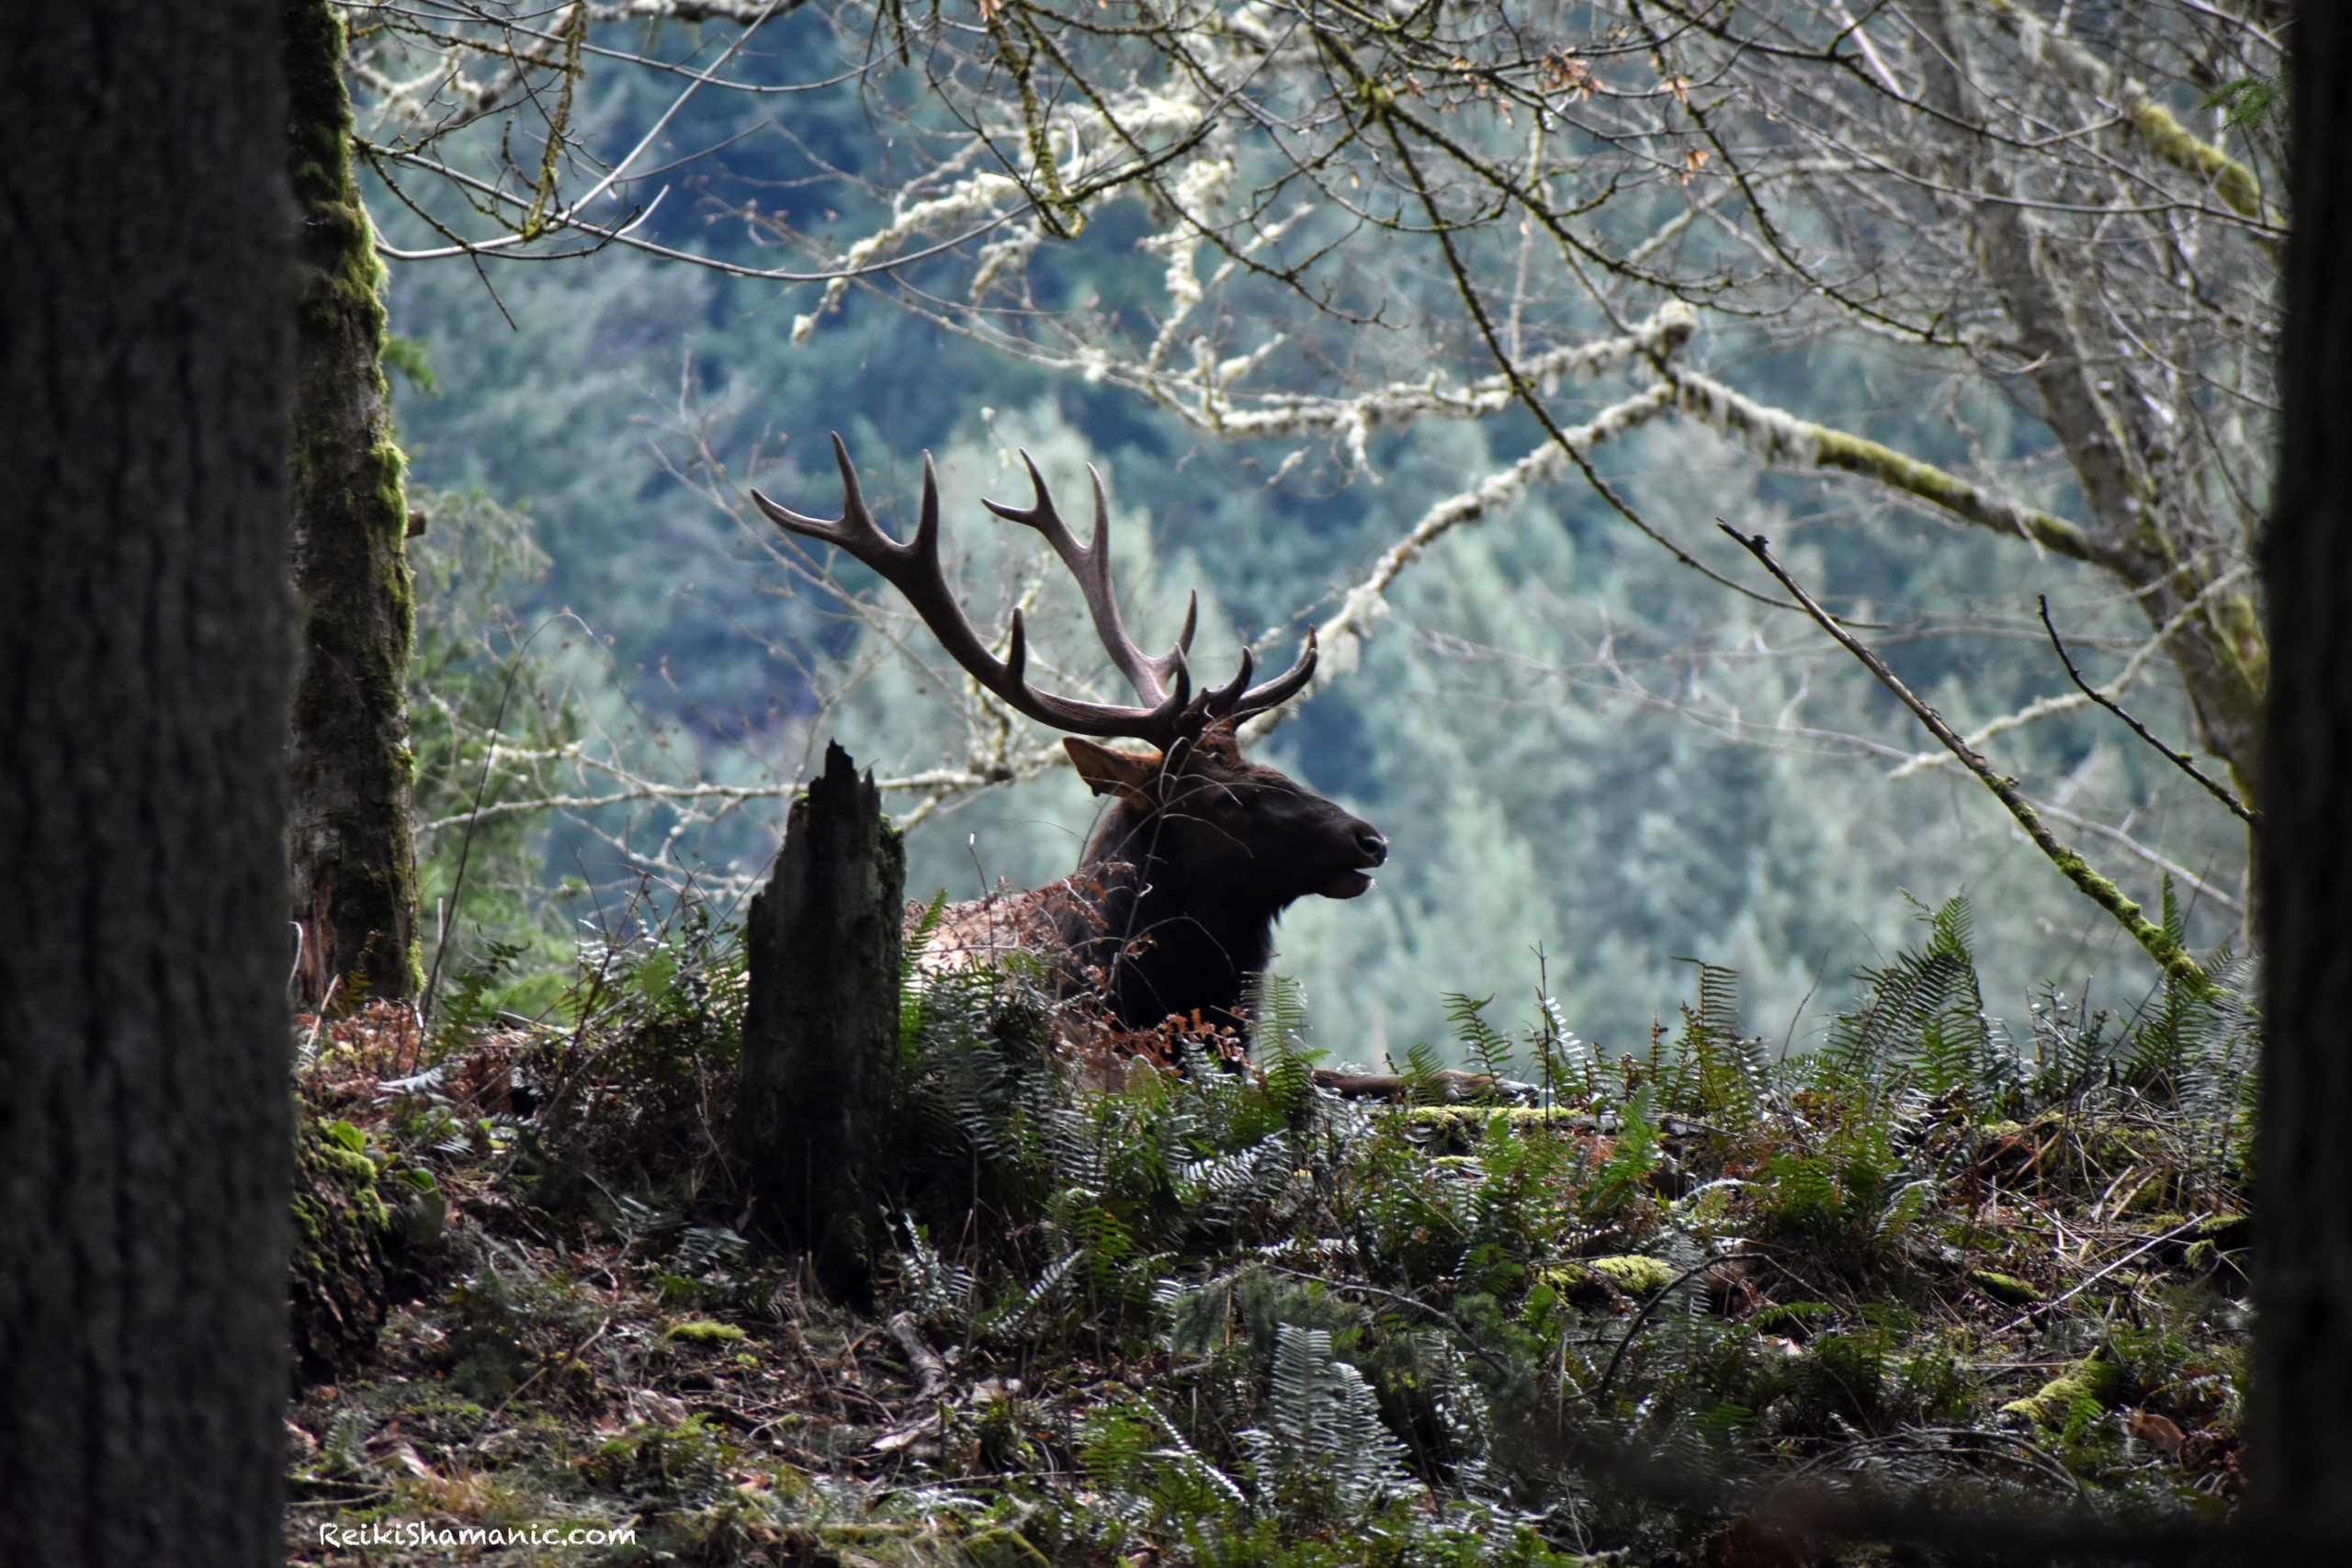 The Animal Shaman, The Elk, And The Sword